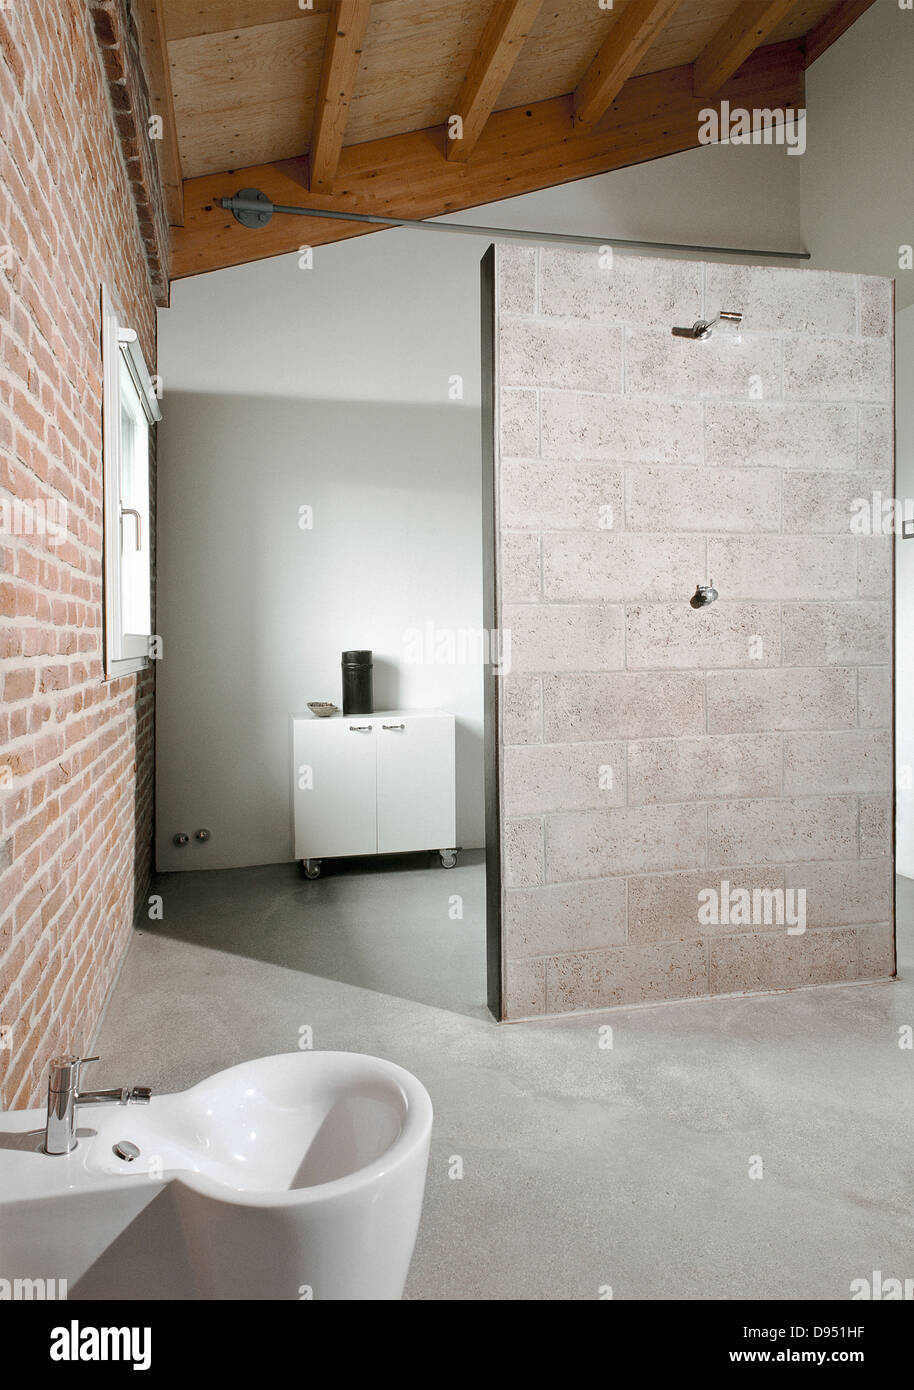 detail of shower cubicle of modern bathroom in the attic with wood